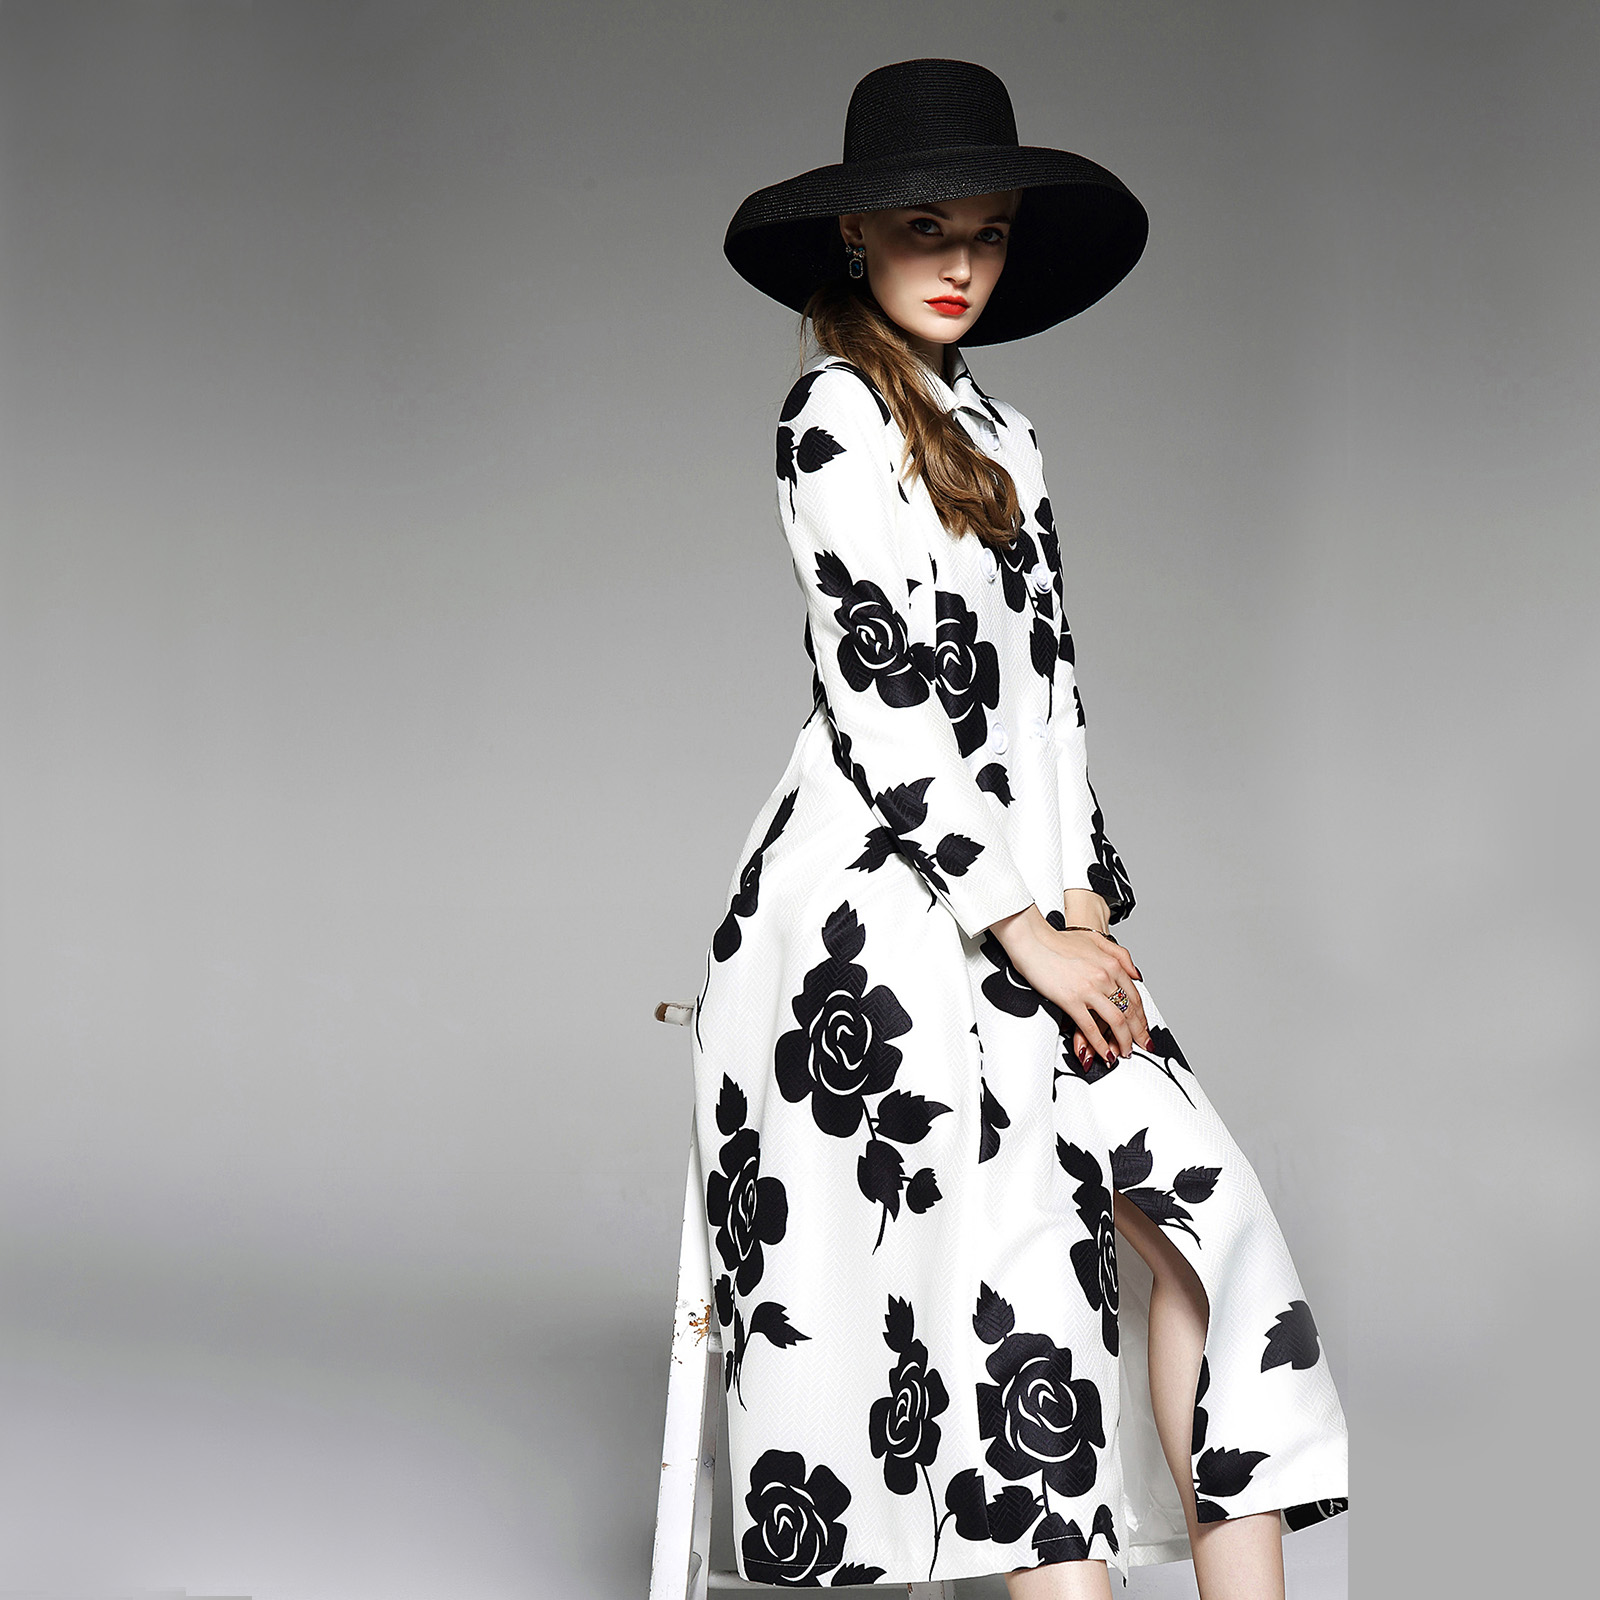 Lady Spring and Autumn Vintage Printed Double Breasted Slim Long   Trench   Coat Lapel Women Plus Size Elegant Windbreaker Overcoats